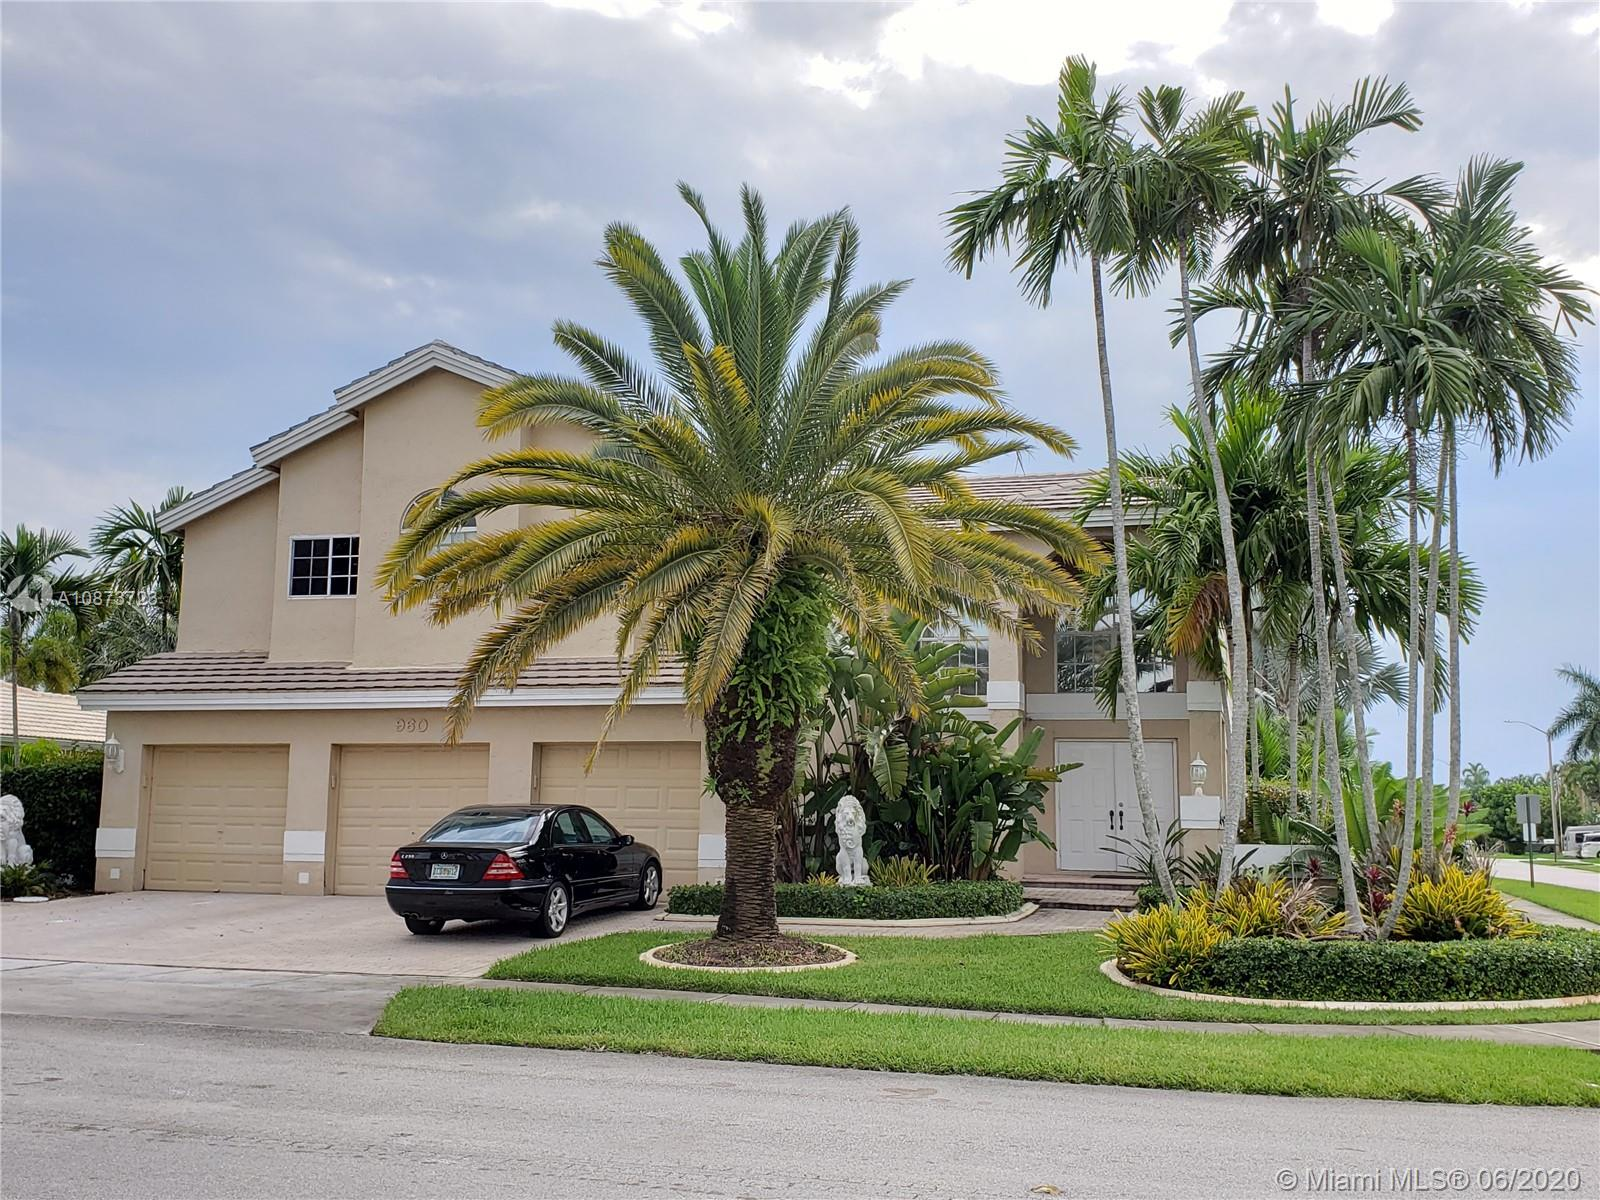 A rare find, beautiful two story home in The Preserve at Chapel Trail Pembroke Pines, oversized corner lot, screened in patio, jacuzzi, new fence. Tastefully decorated and renovated, new kitchen counter top and backsplash, newer appliances. Lots of amenities such as, tennis, basketball, baseball diamond, racquetball, community pool, party room, nature preserve, cable. One AC unit is from April 2019 and the other is from June 2019. Roof from 2006.